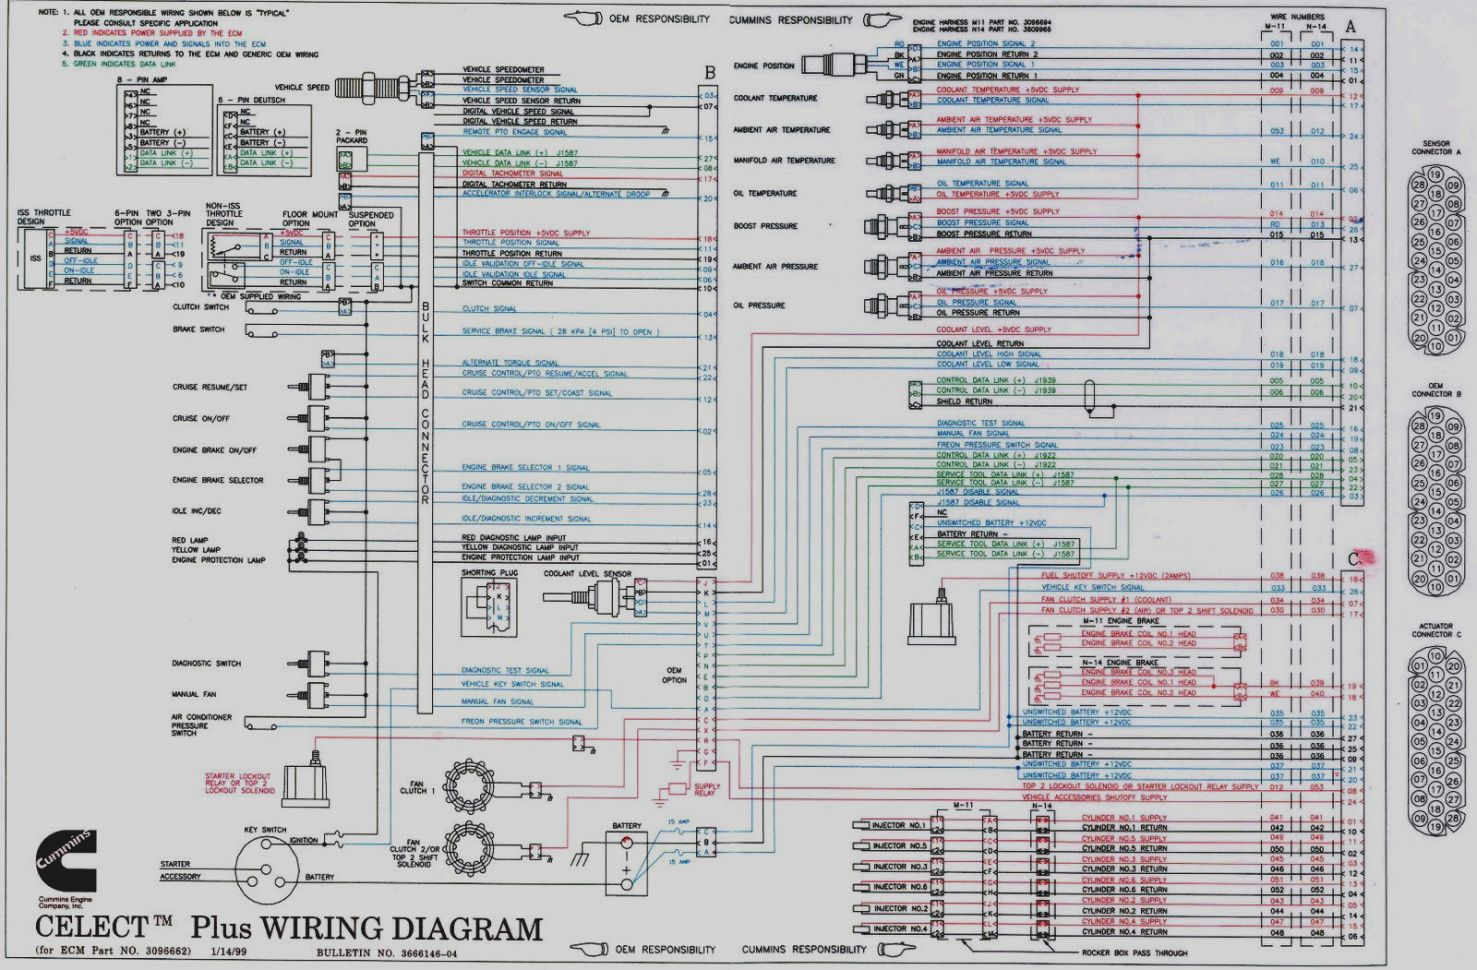 medium resolution of awesome cummins n14 celect plus wiring diagram freightliner columbiaawesome cummins n14 celect plus wiring diagram freightliner